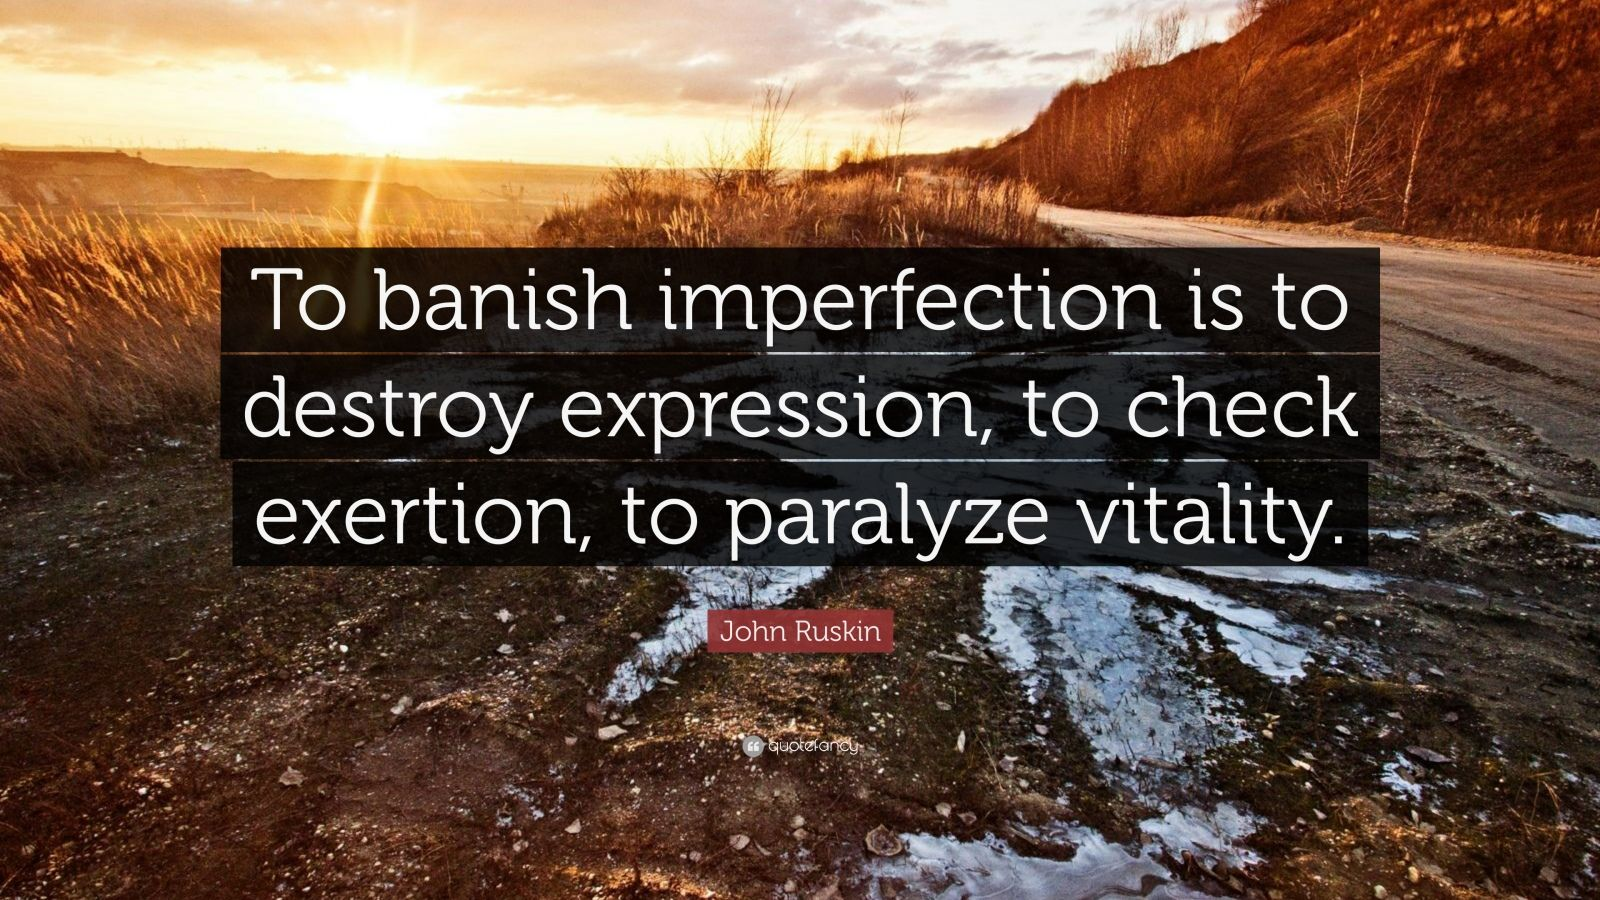 """John Ruskin Quote: """"To banish imperfection is to destroy expression, to check exertion, to paralyze vitality."""""""